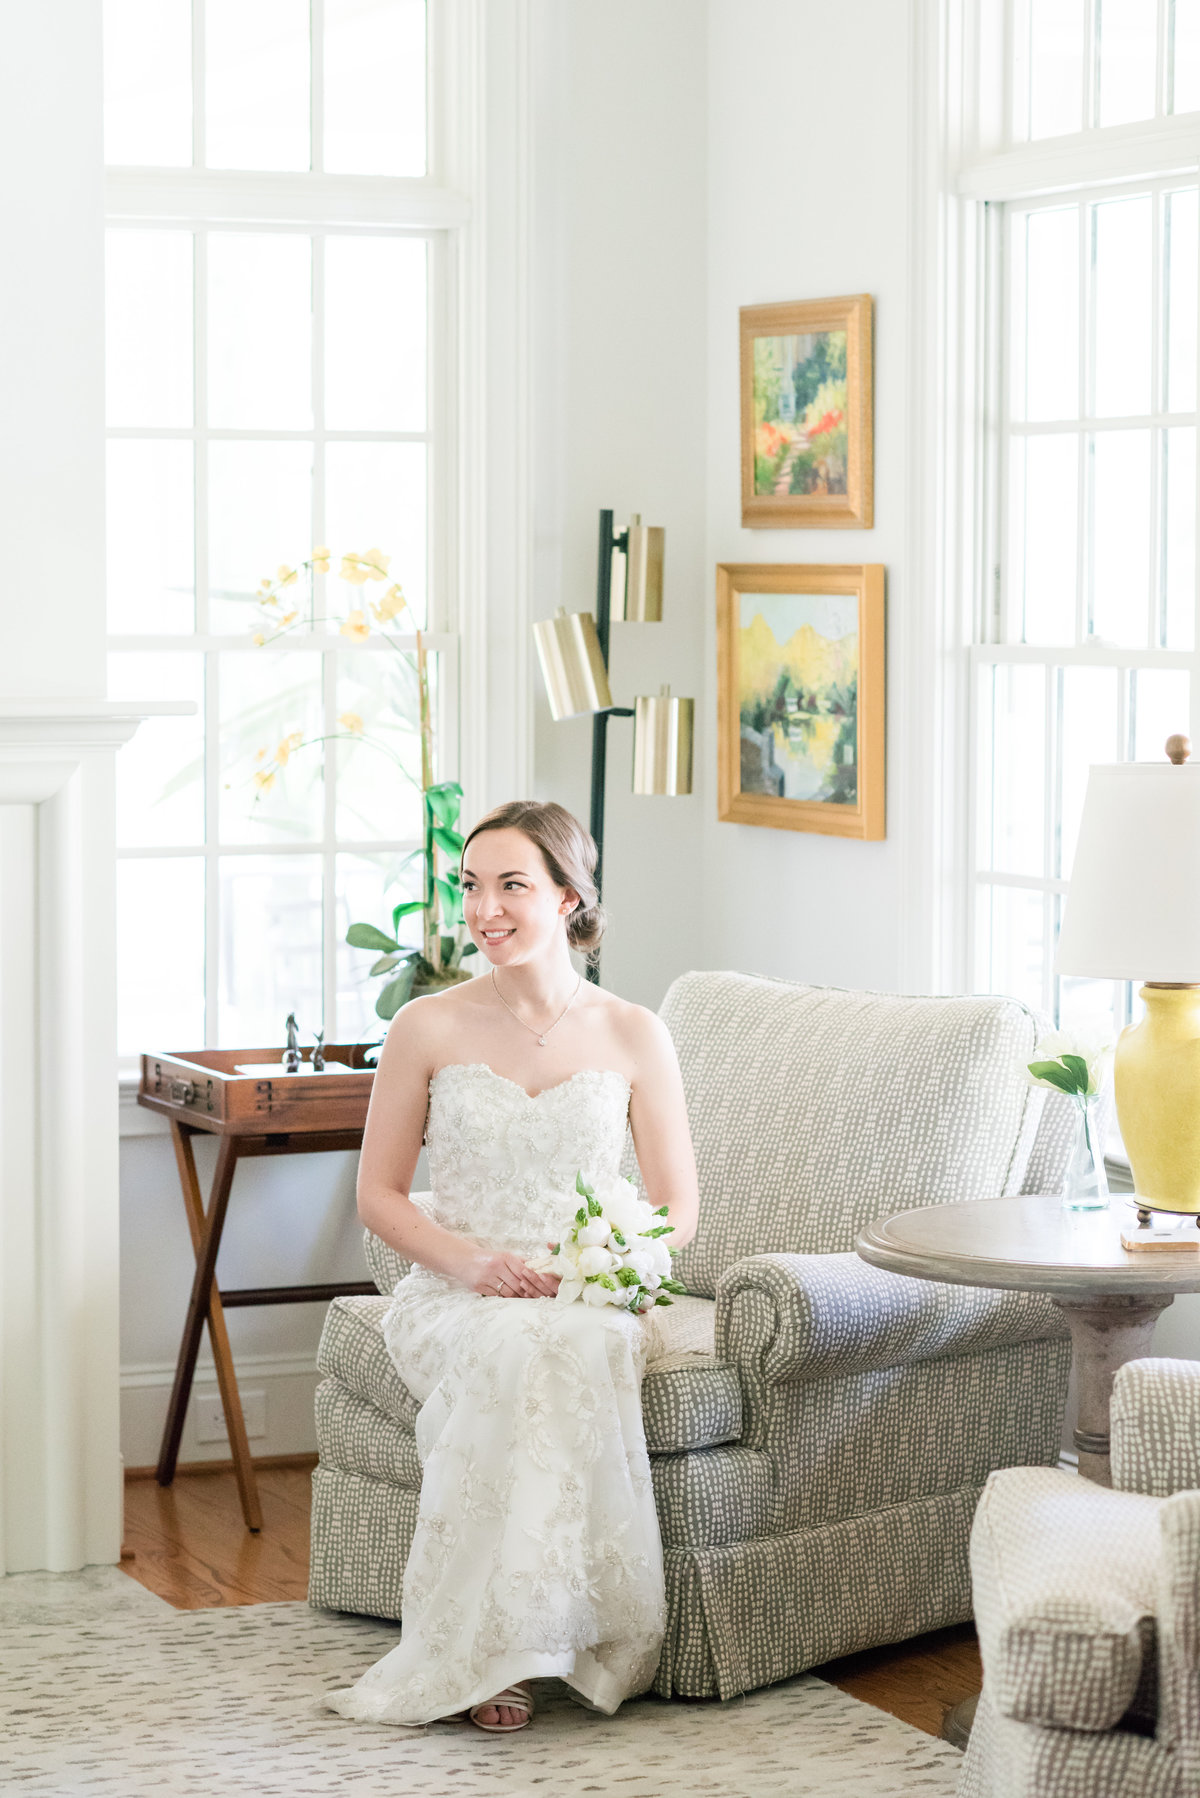 a bride wearing a laced strapless dress with no train sitting on a gray master seat in an elegant home looking off holding a white and green wedding bouquet